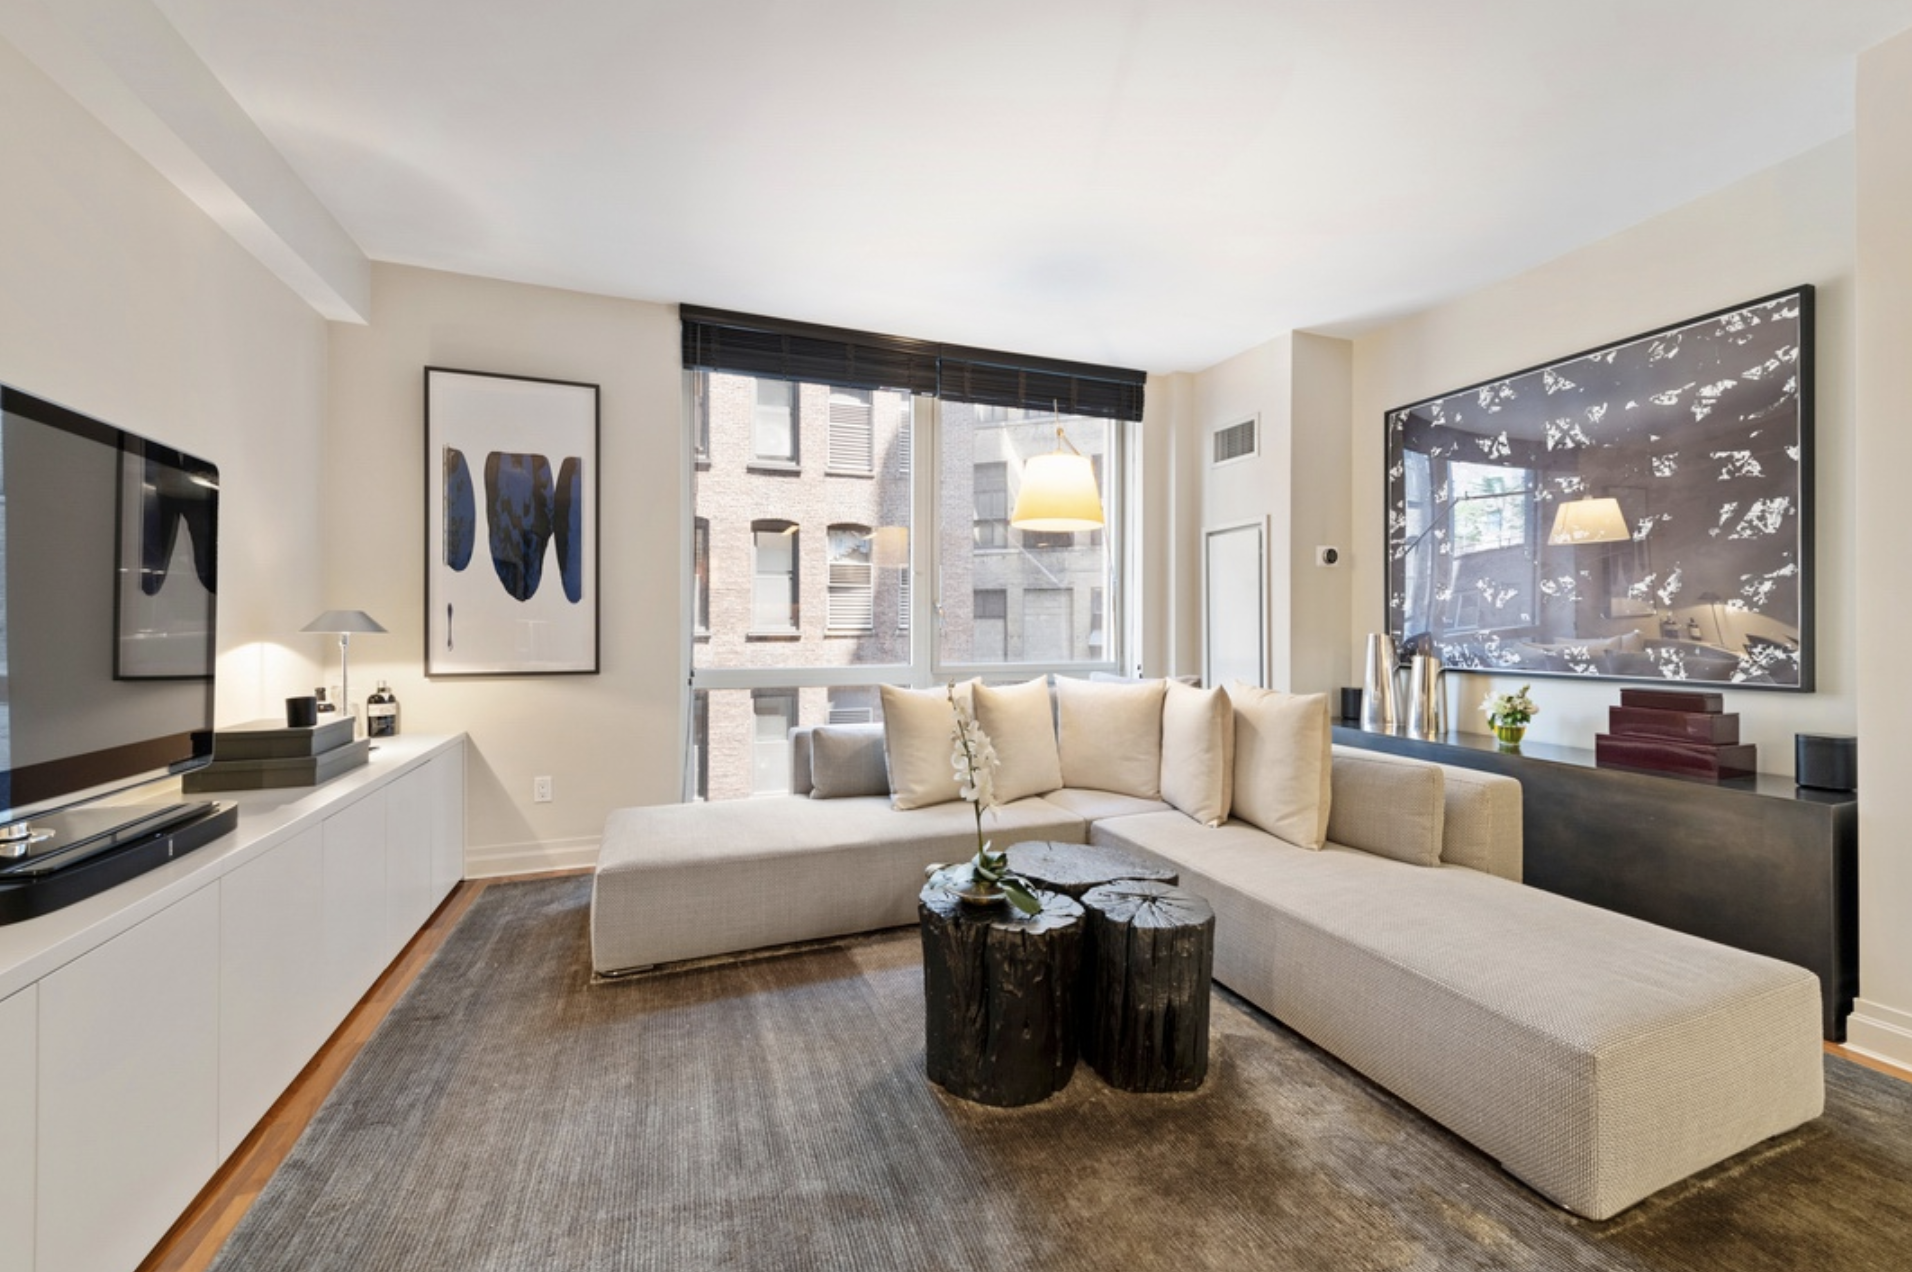 39 EAST 29TH STREET, 11D - $1,350,000 // 1 Beds // 1 Baths // 792 SQFTA pristine NoMad condo boasting an array of chic fixtures and finishes, this home blends warm, organic textures with contemporary lines and functionality. Features of this 792 sq. ft. apartment include gorgeous teak flooring, floor-to-ceiling windows with northern exposure, central heating and cooling, custom built-ins, and a convenient in-unit washer/dryer.